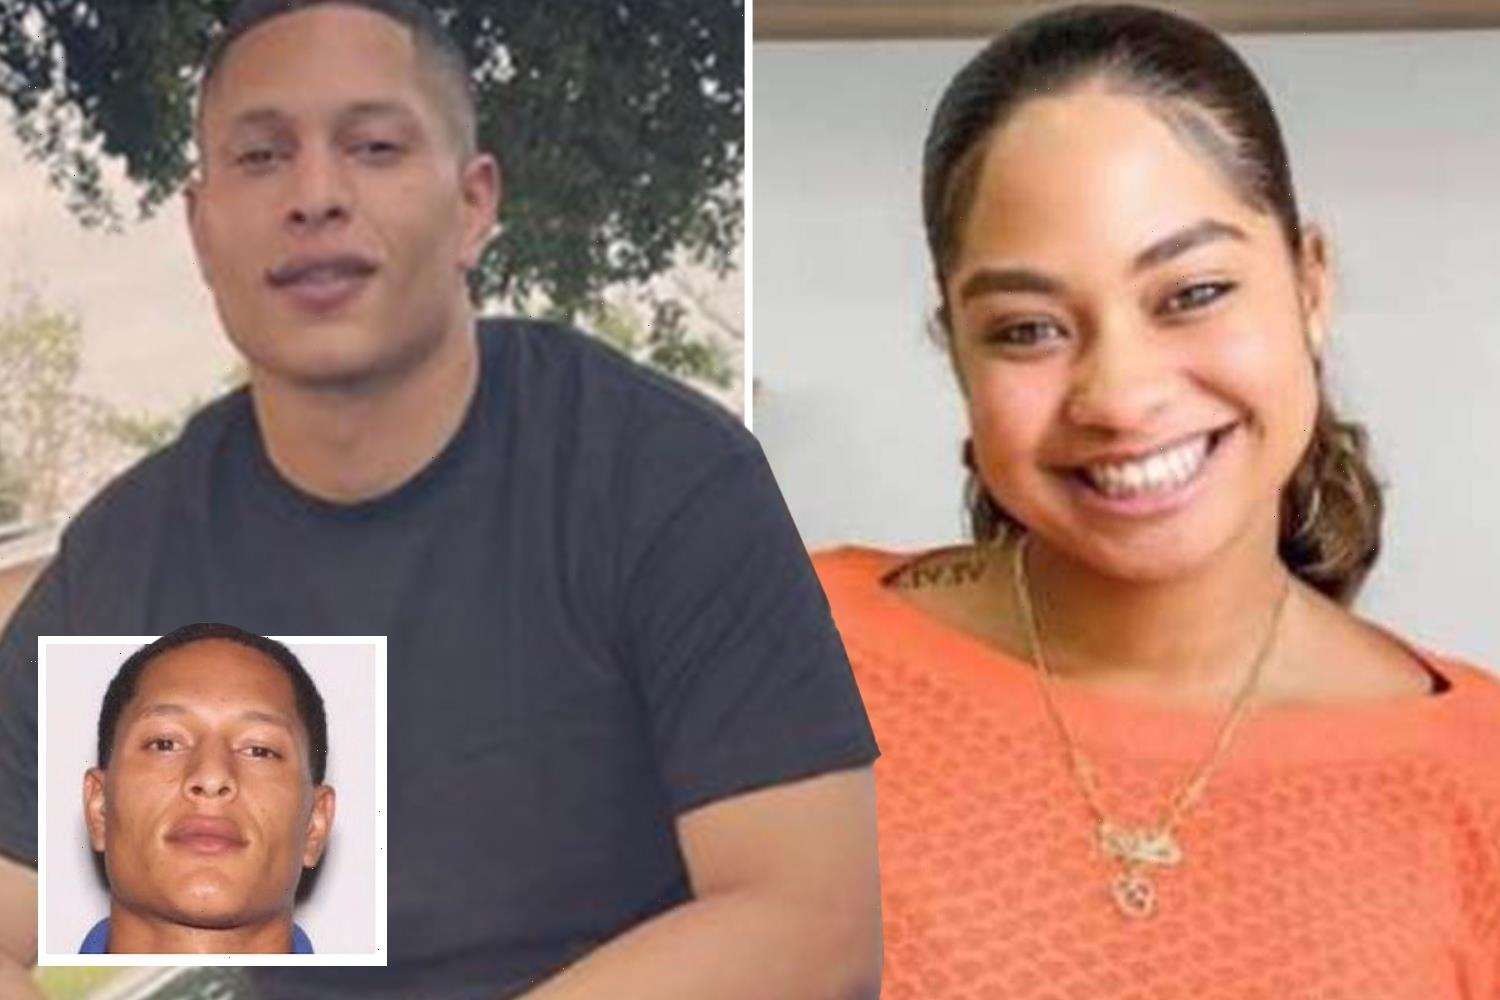 Miya Marcano 'suspect' Armando Caballero's cell phone reveals he visited Tymber Skan apartments where her body was found